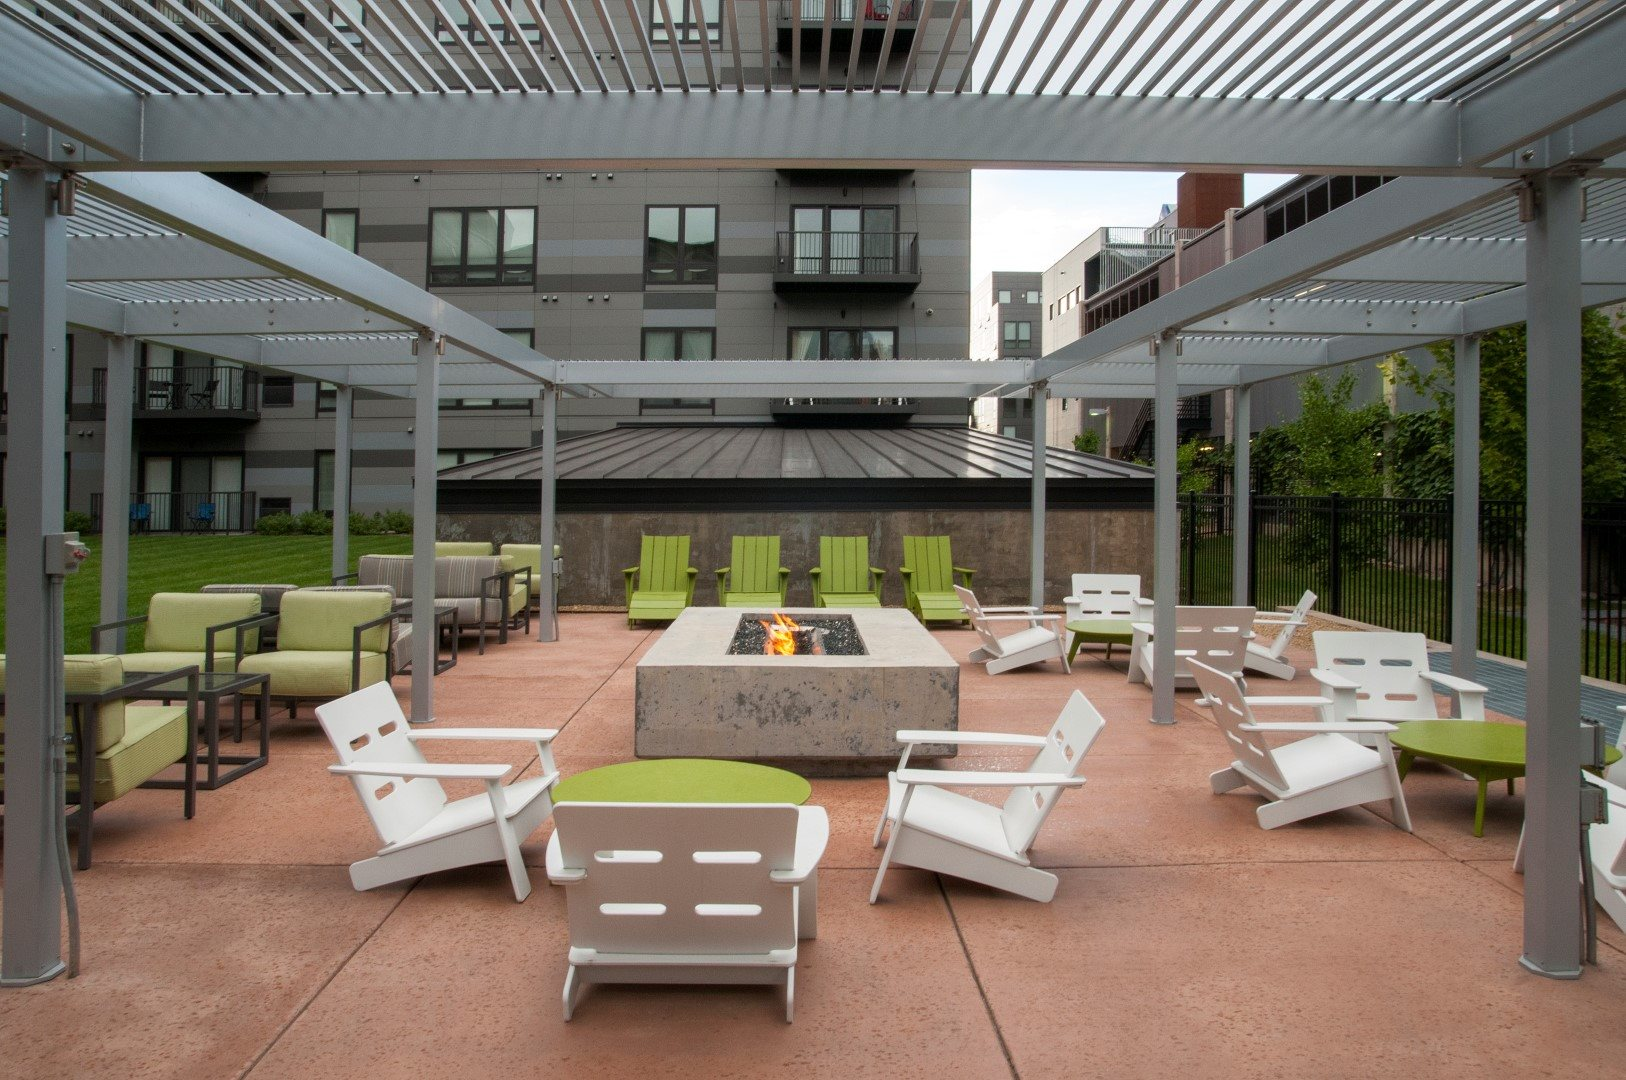 Large Patio With Comfortable Chairs at Third North, Minnesota, 55401